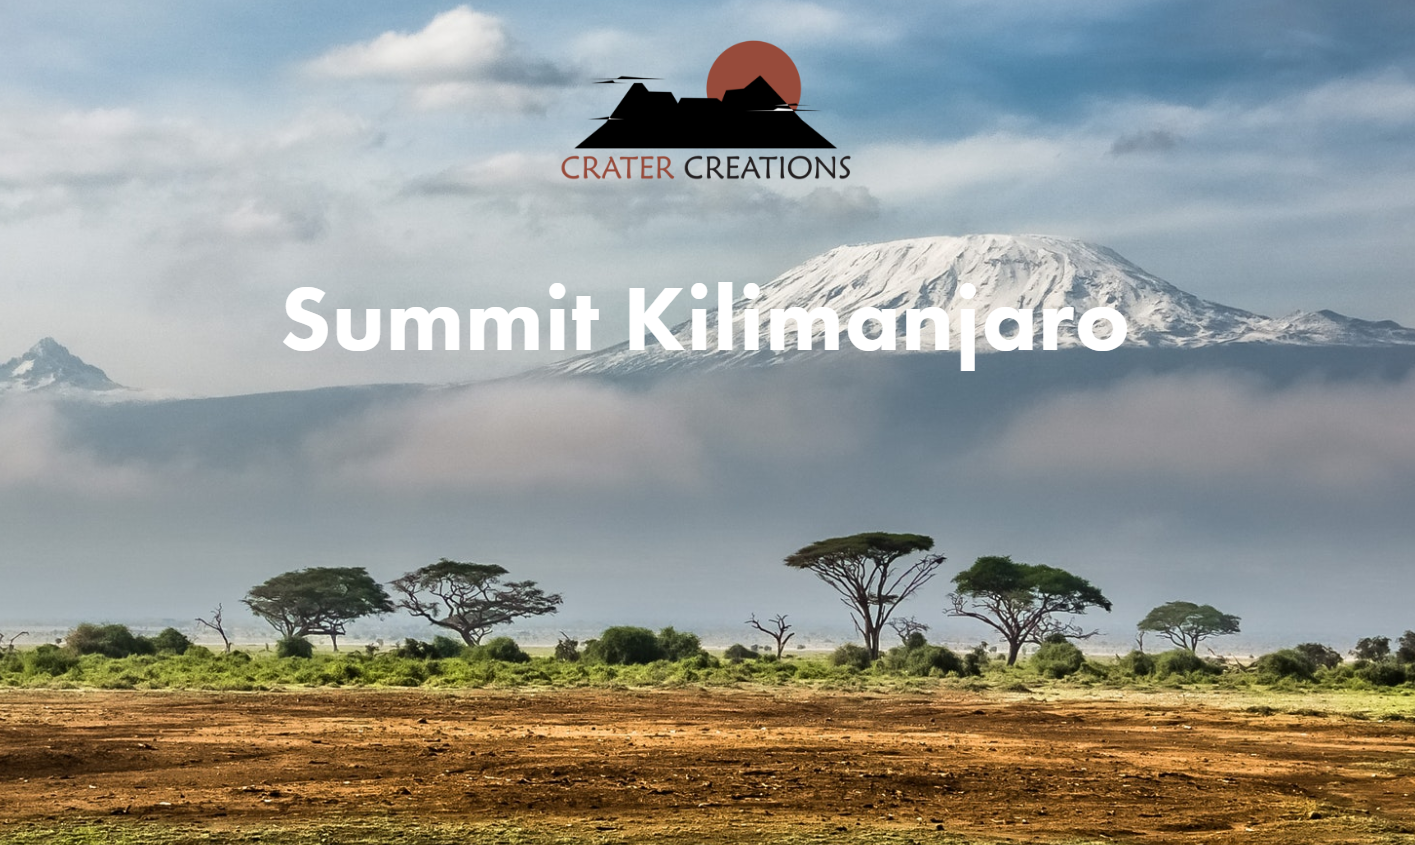 Summit Kilimanjaro - When: January 6 - 18, 2019Climb Fee: $2,250Fundraising: $1,400 (Tax Deductable)